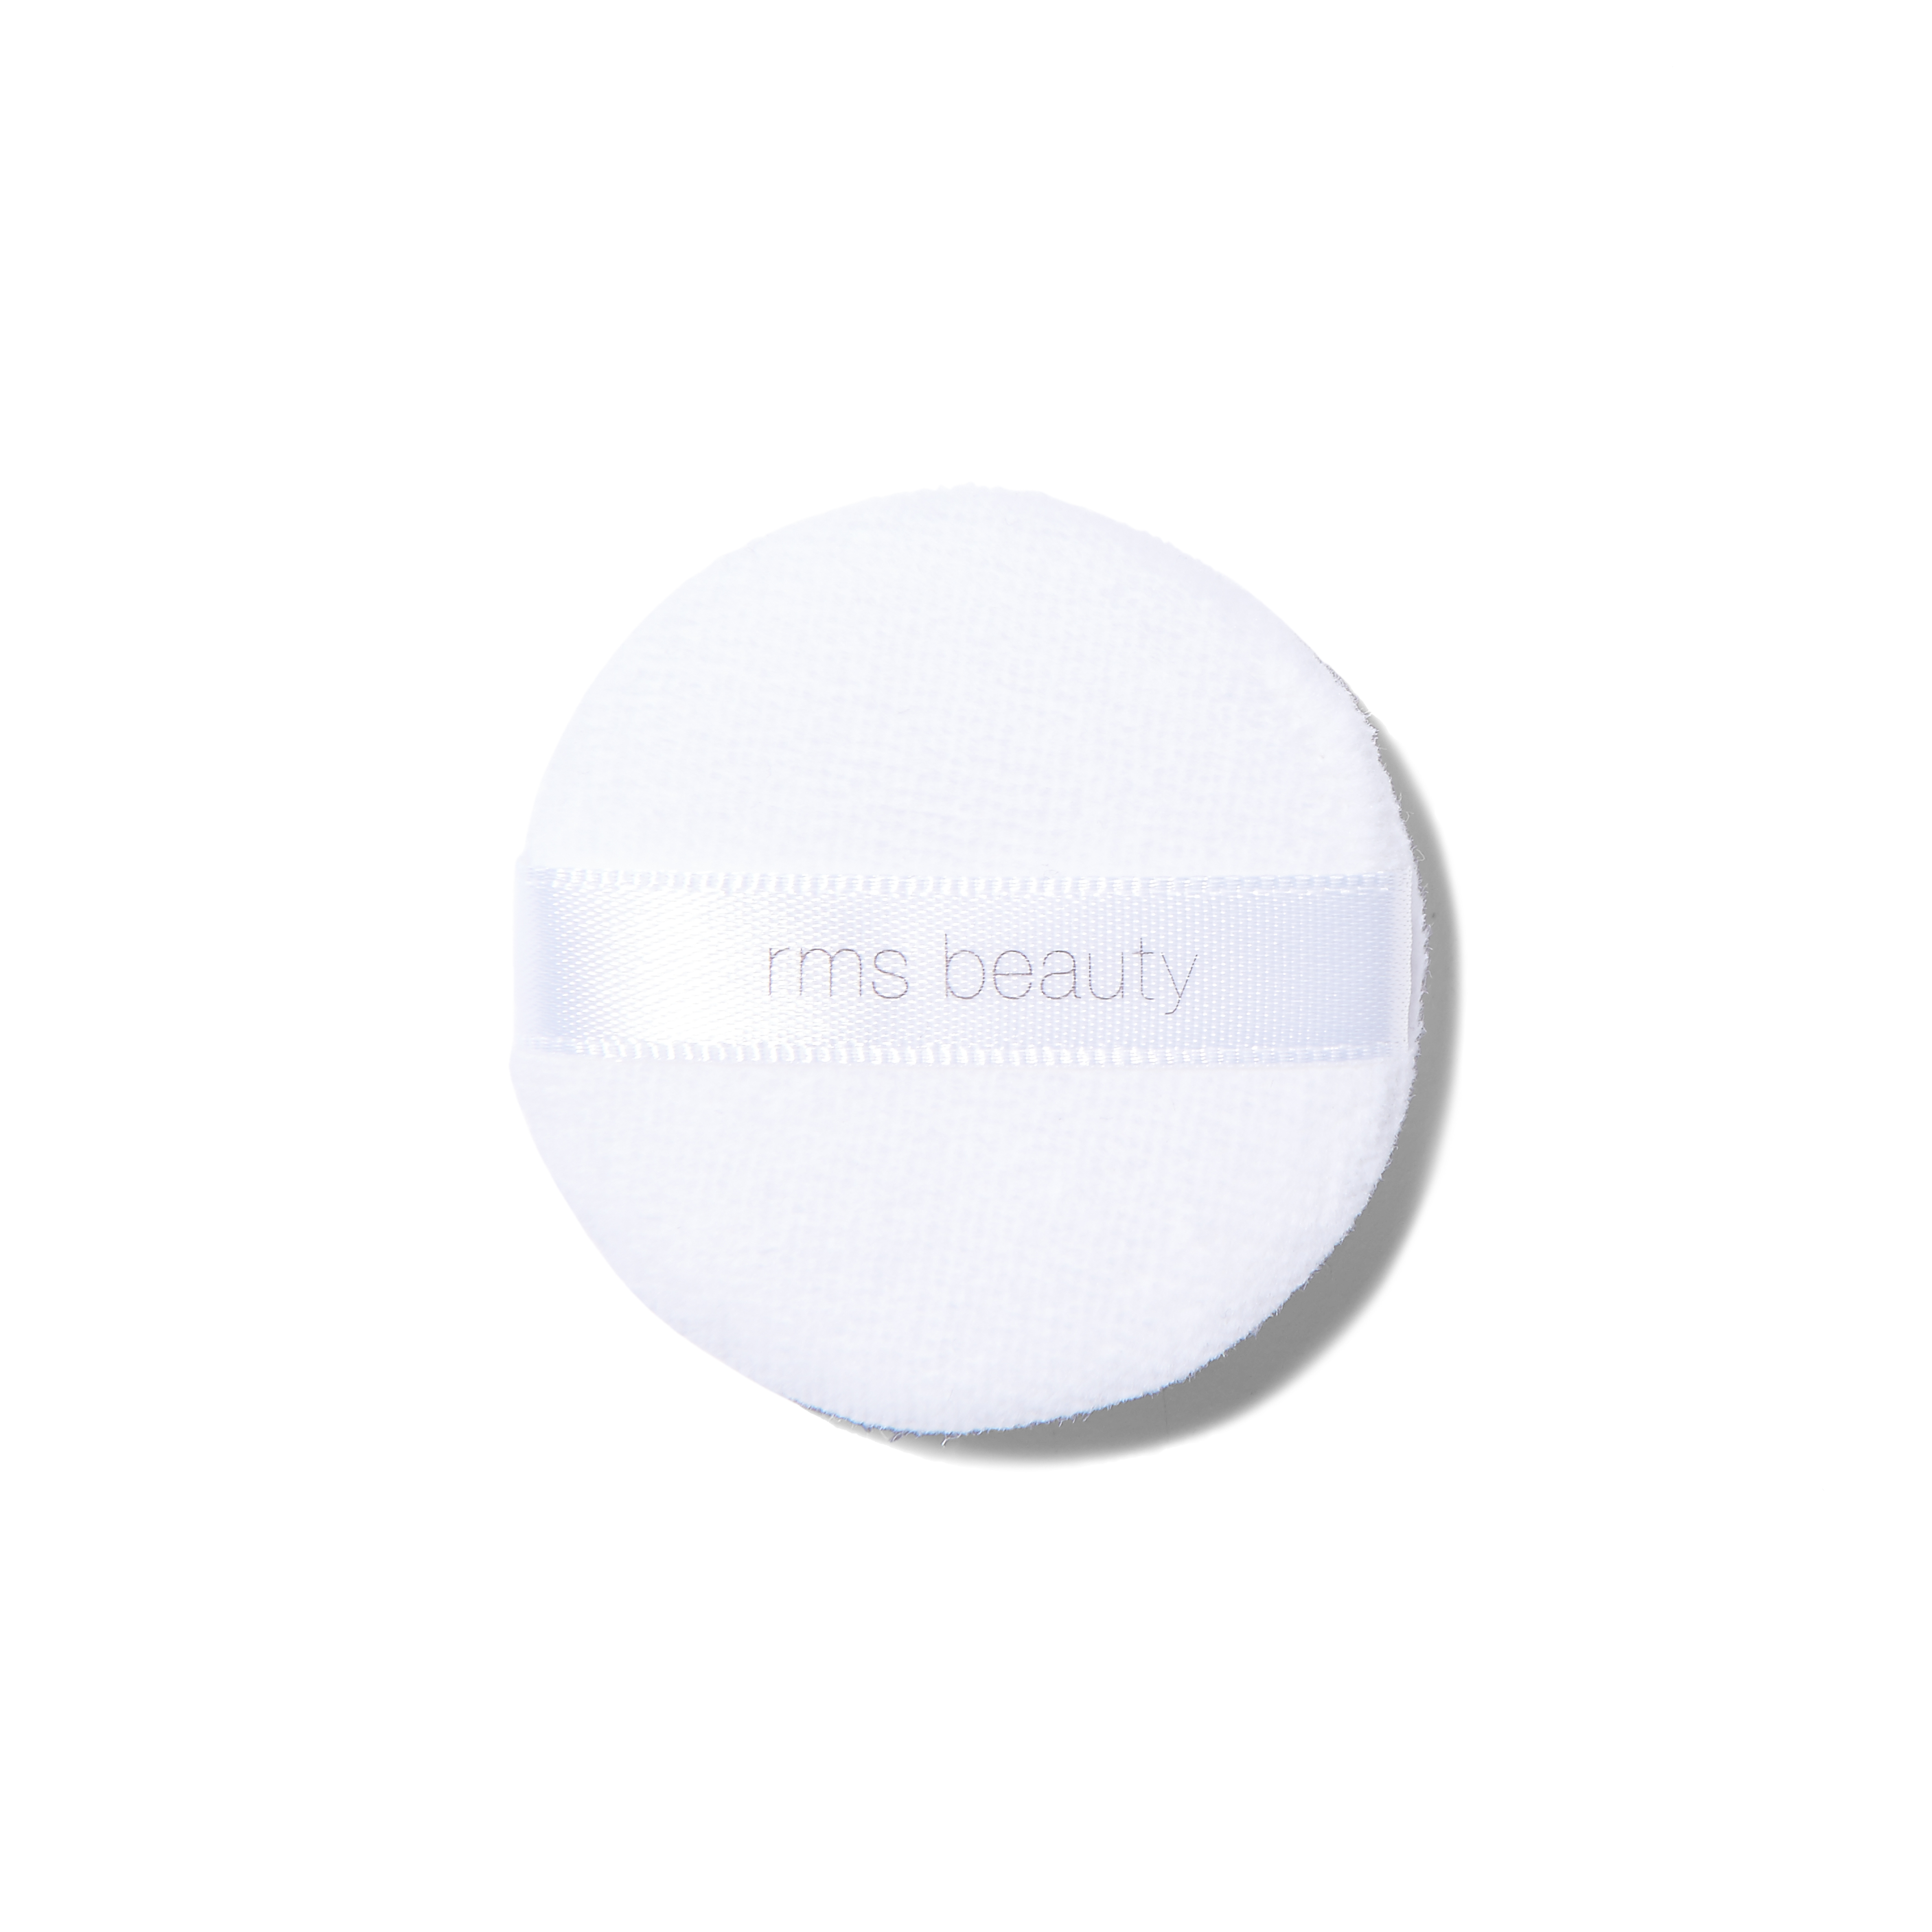 816248020003 - RMS Beauty Tinted